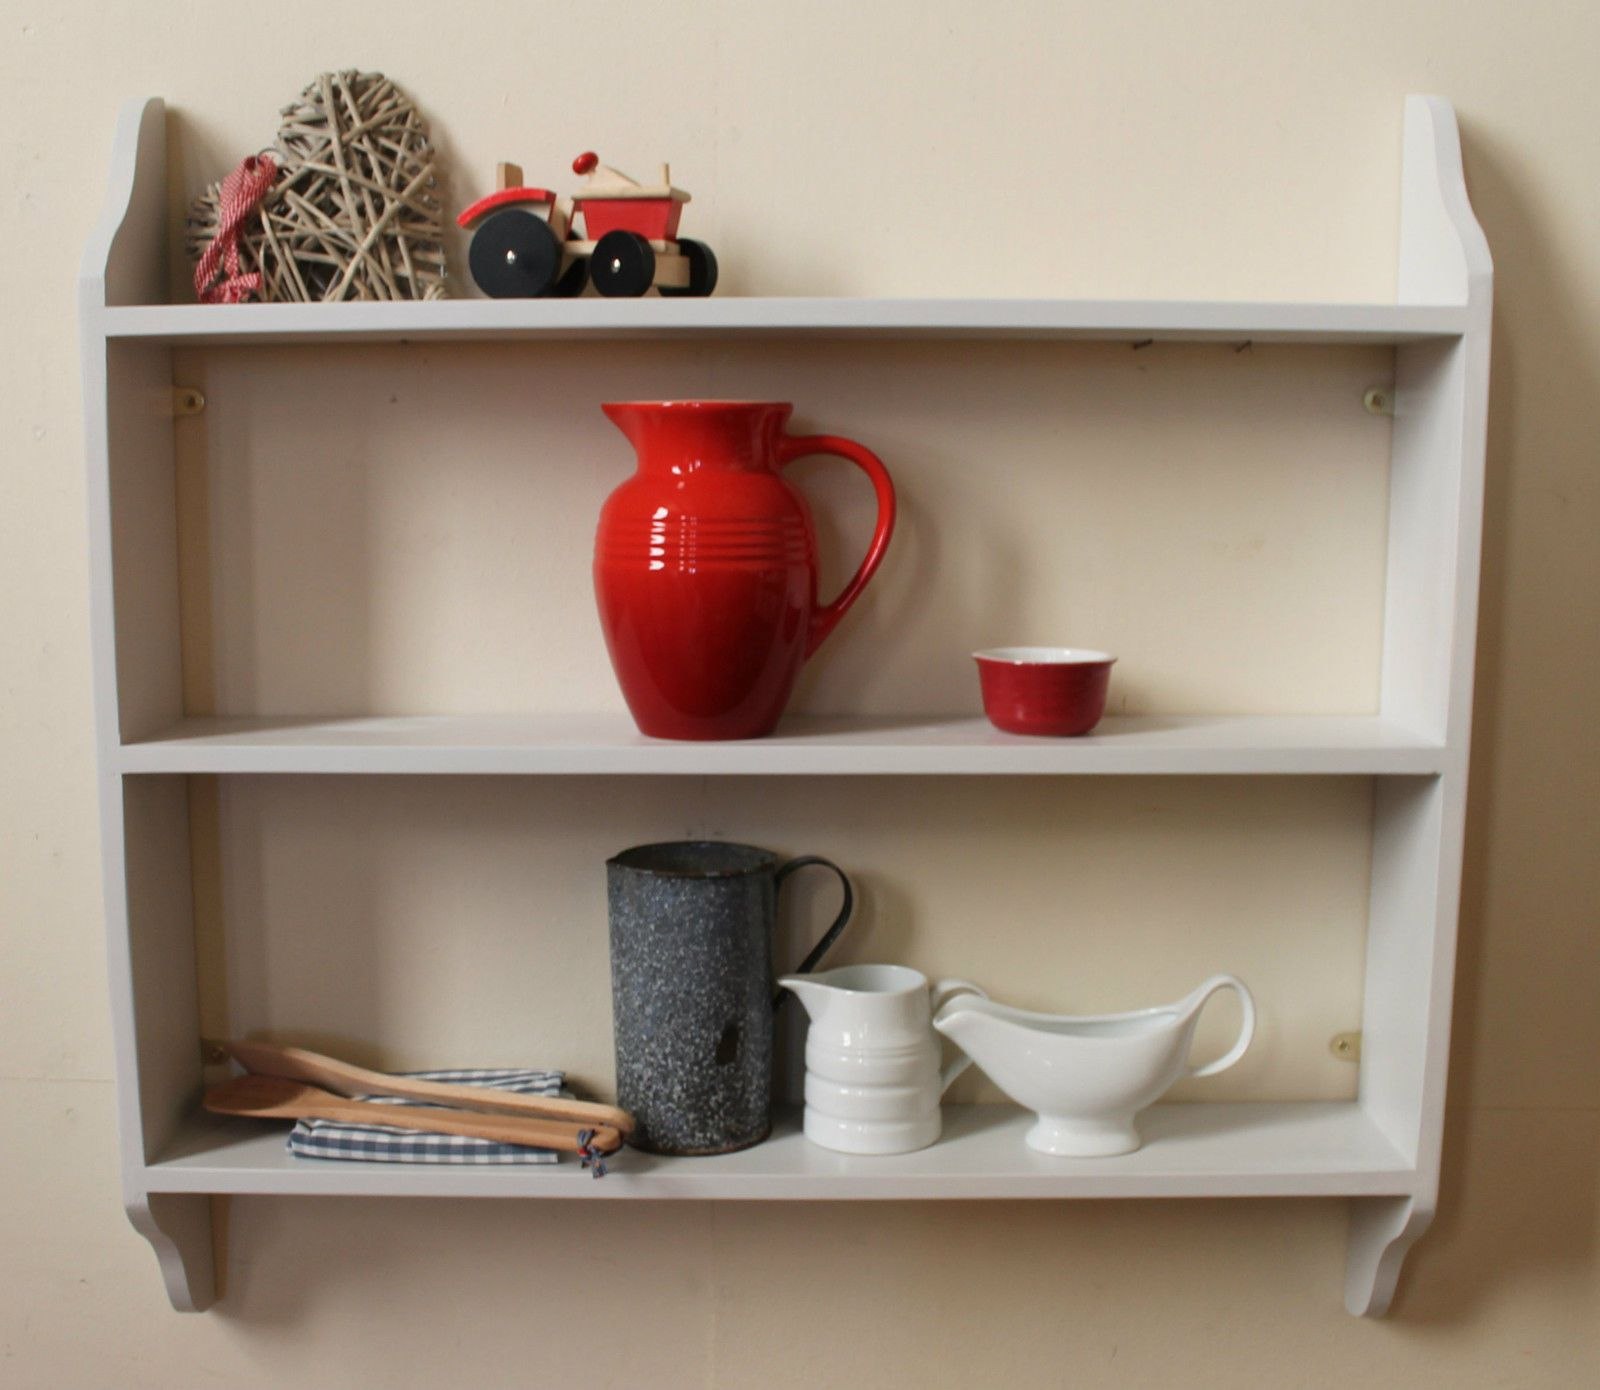 room bookcase showroom overlay island full kitchen painted contemporary style thumb bookcases affordable custom cabinets